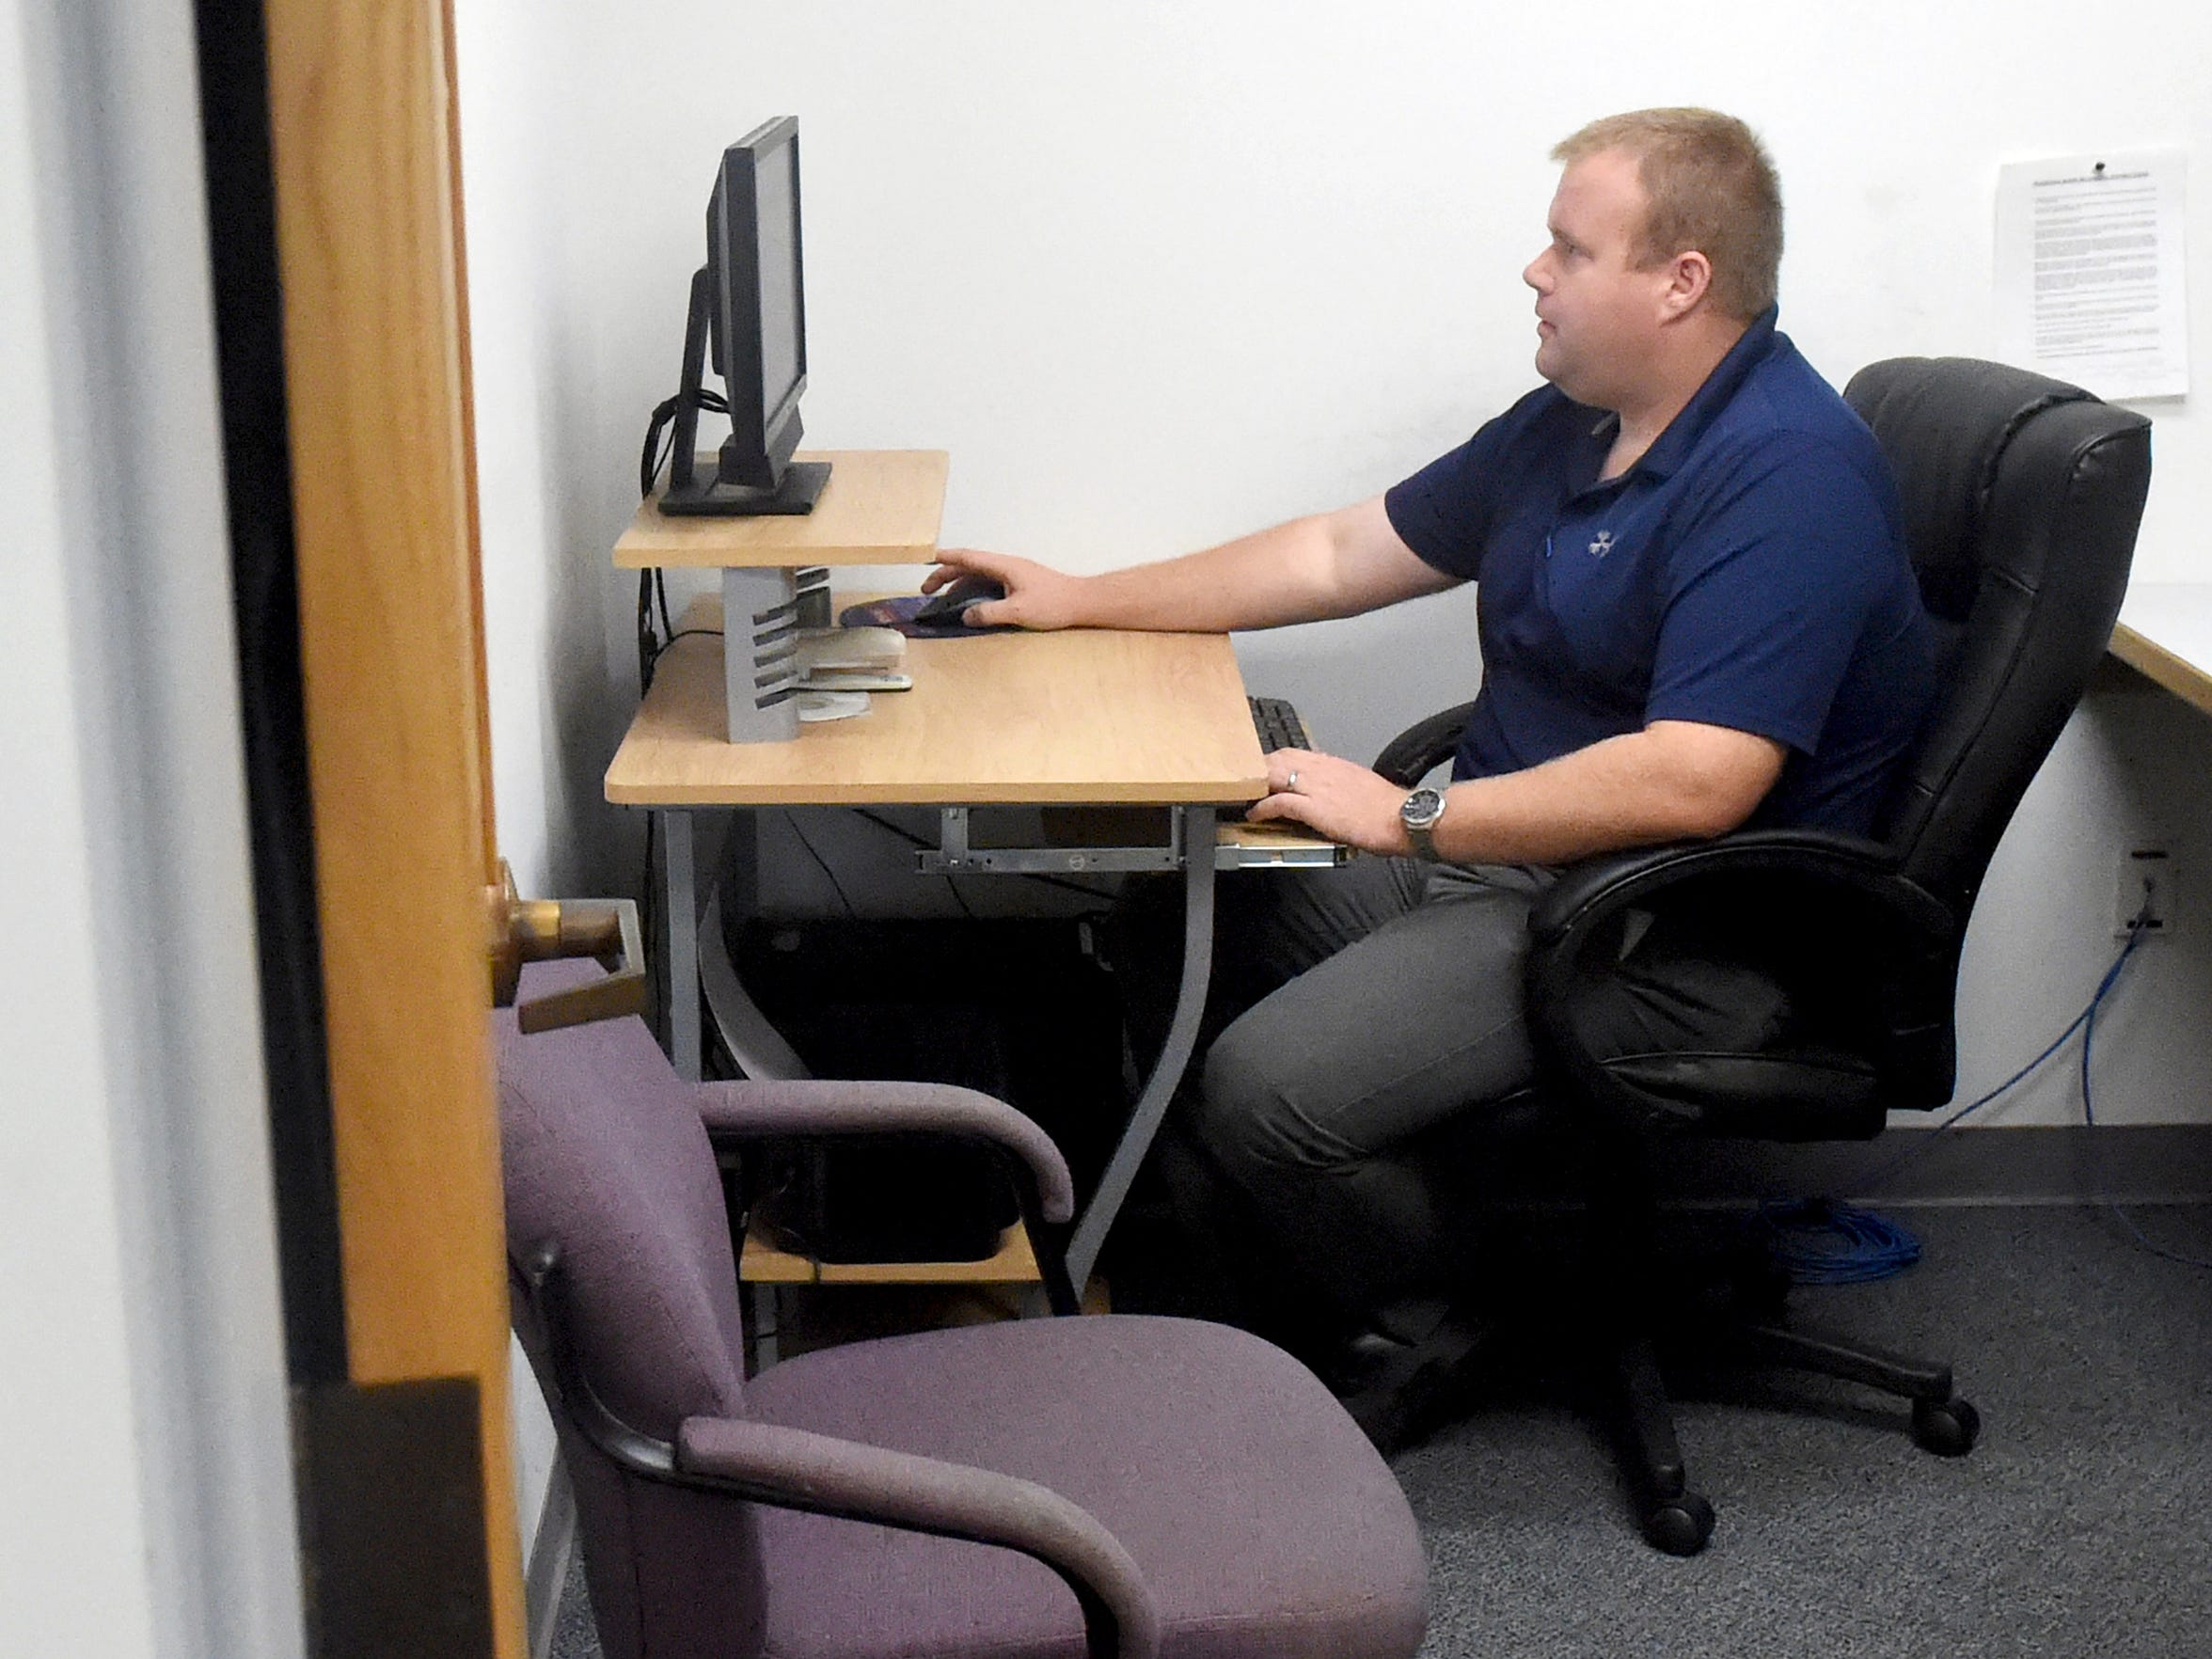 An investigator with the Staunton Police Department, Cpl. Jeremy Campbell sits at the computer he uses when trying to catch online predators.